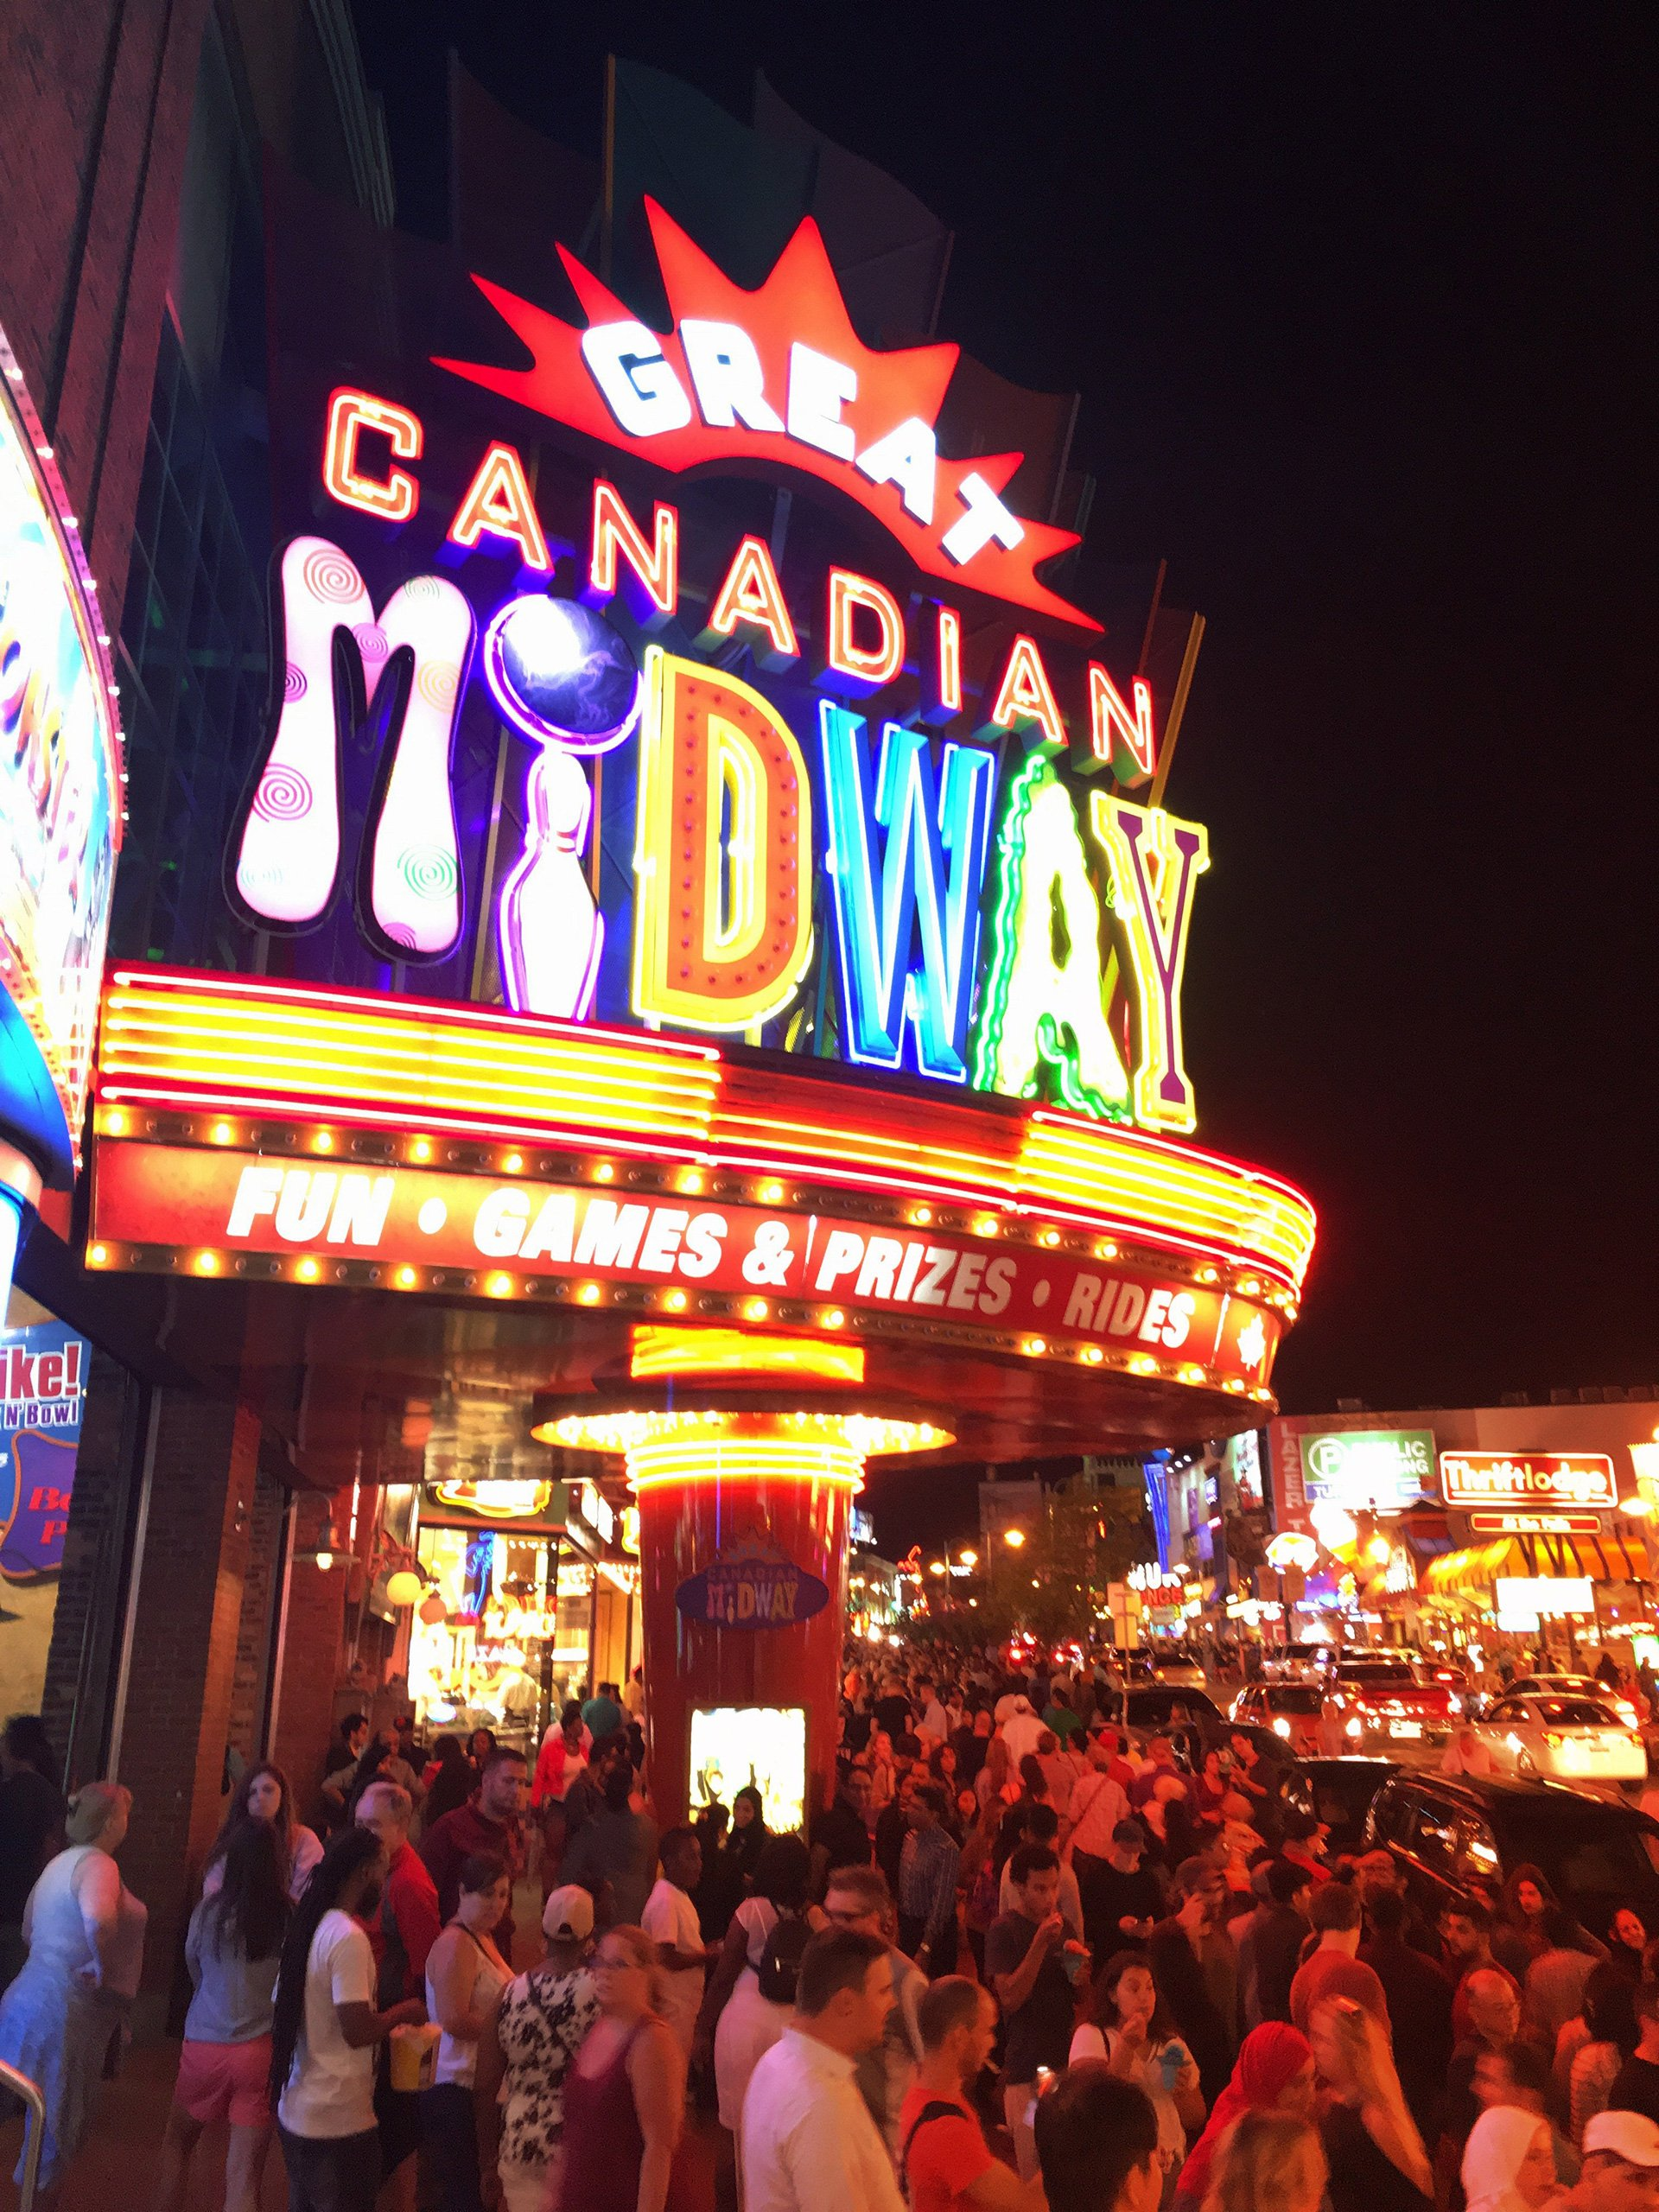 Great Canadian Midway